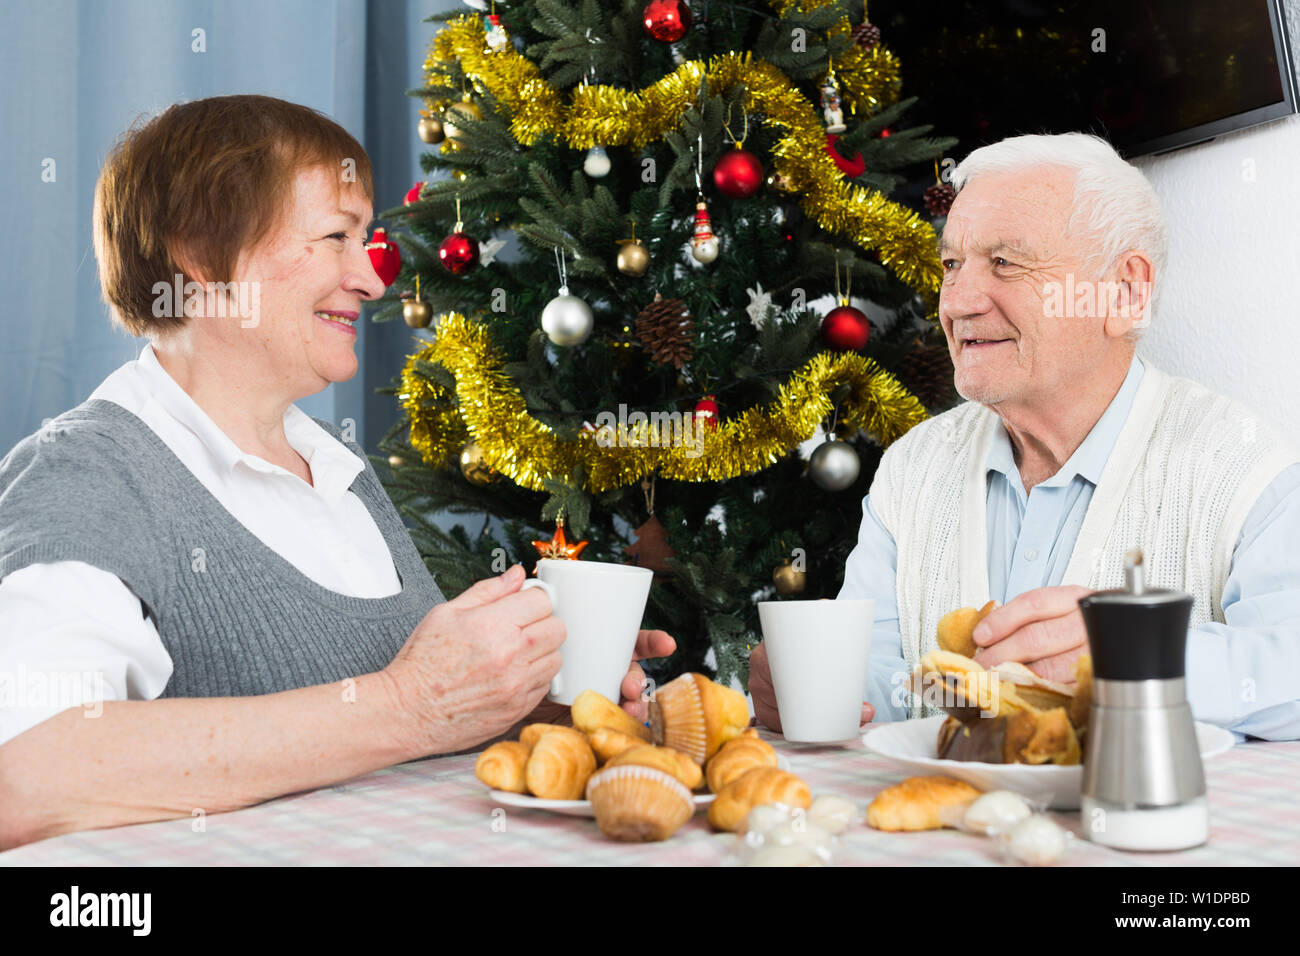 Mature husband and wife happy to spend Christmas together at home - Stock Image